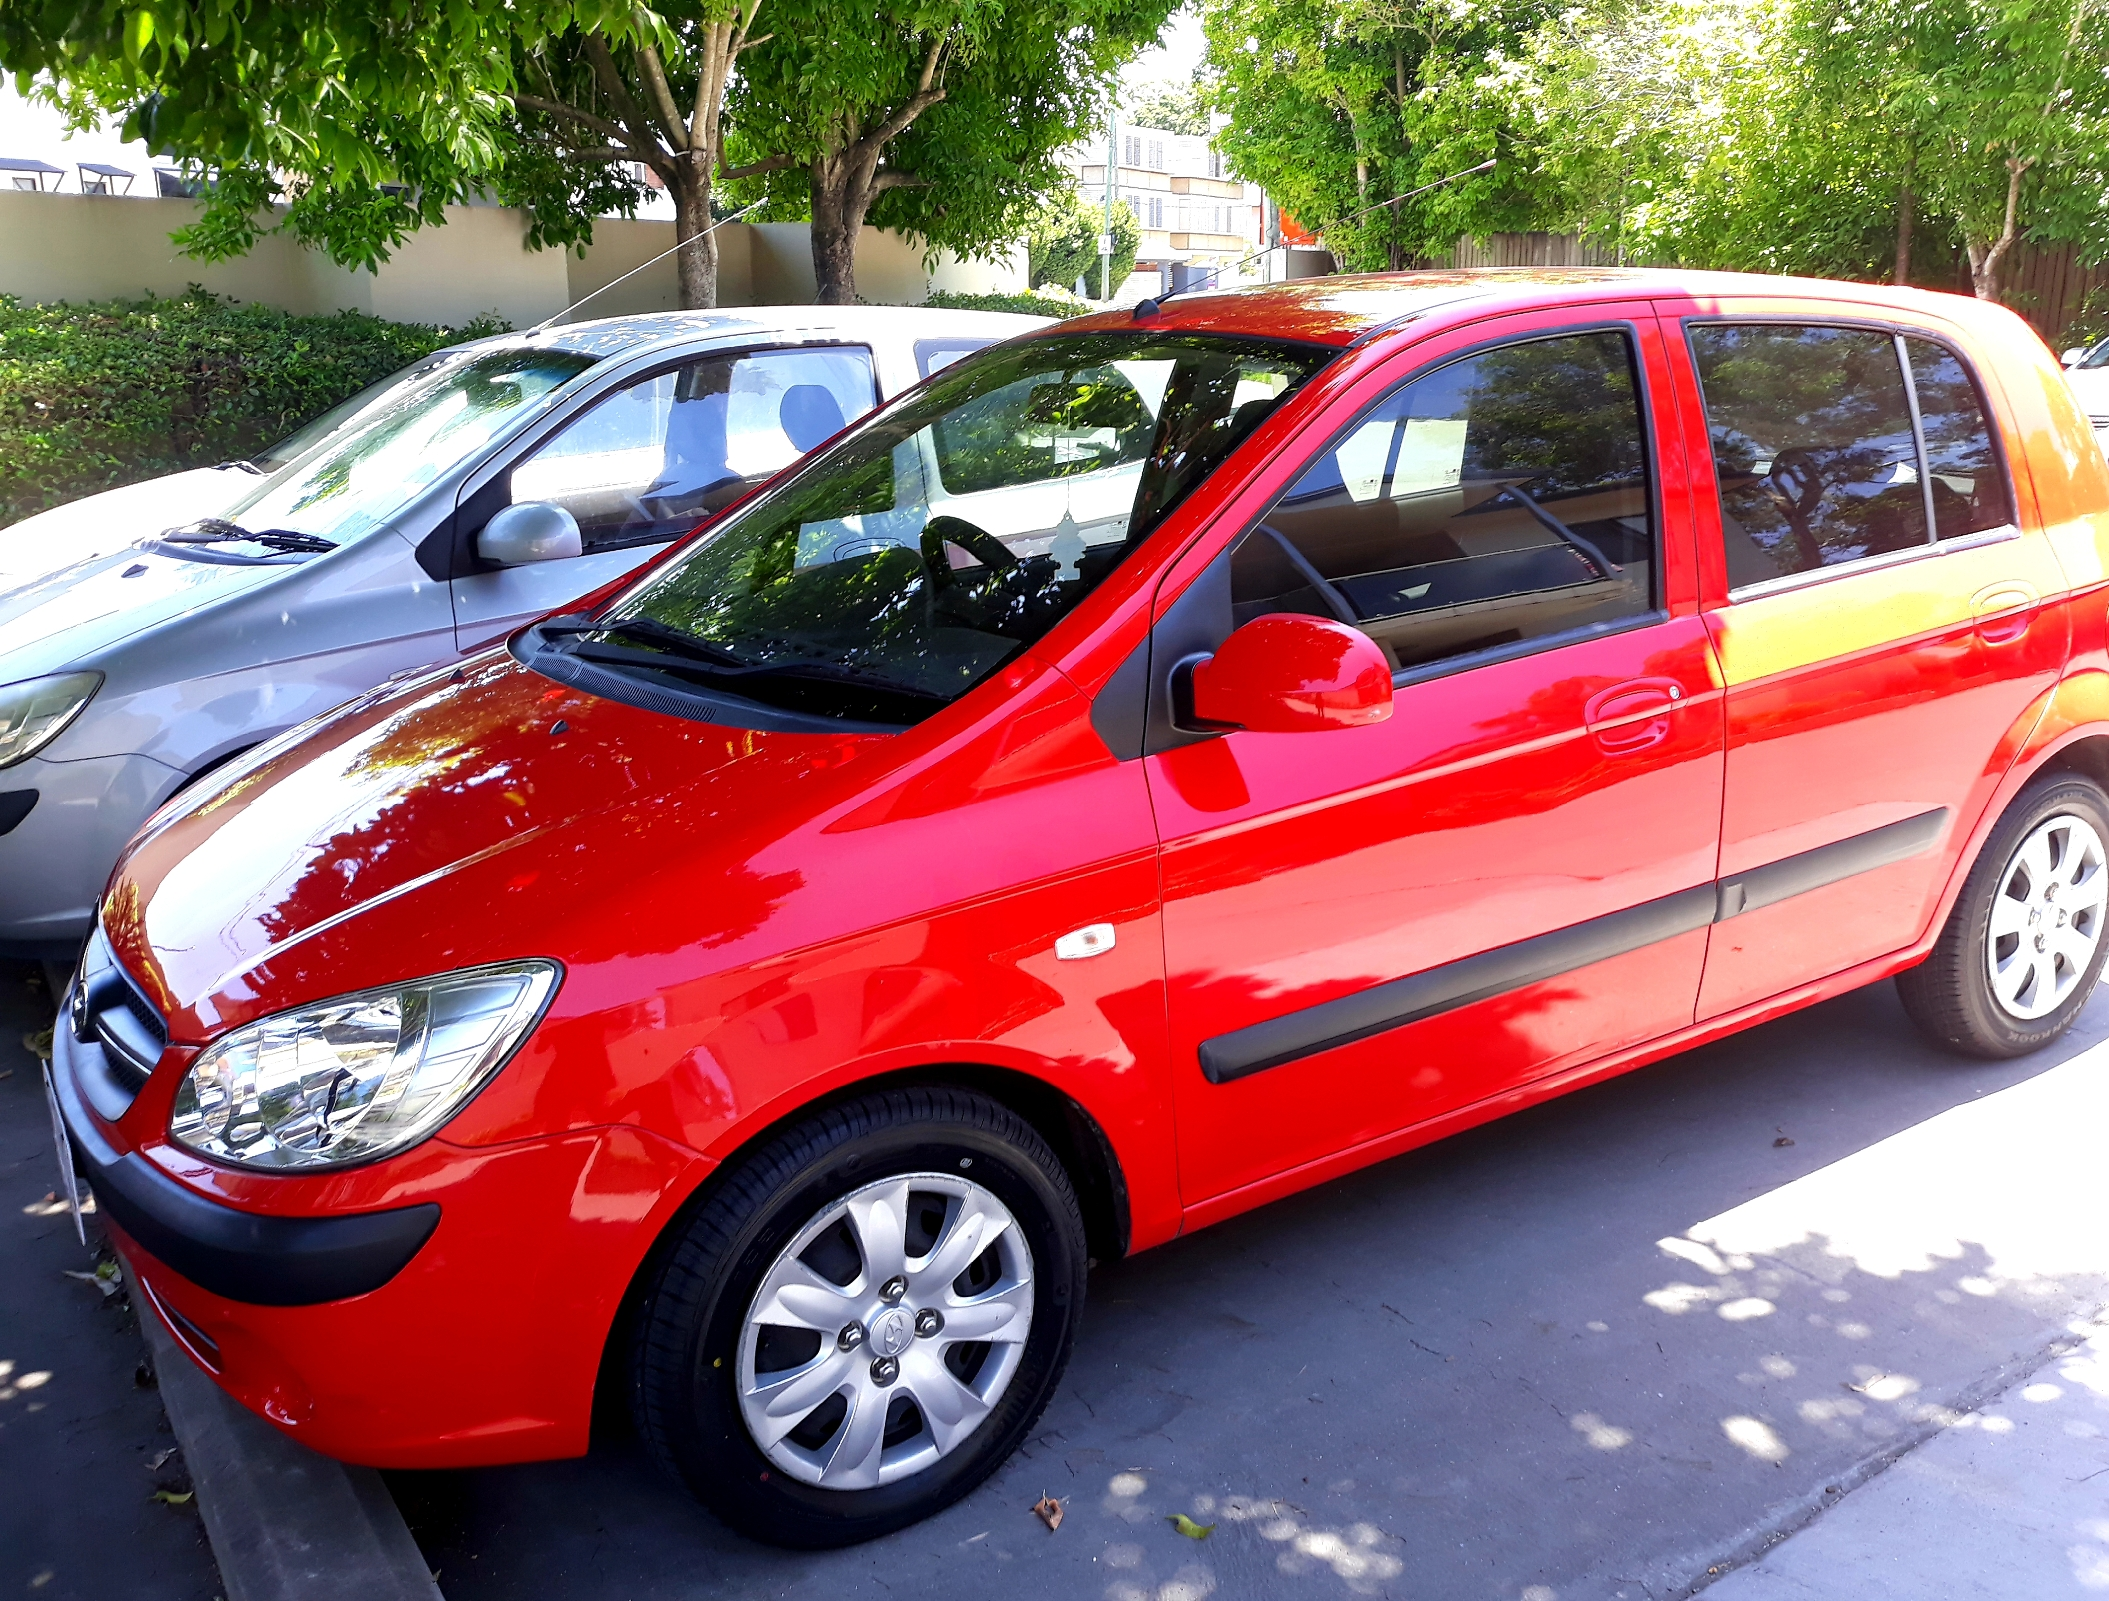 Picture of Larissa's 2010 Hyundai Getz